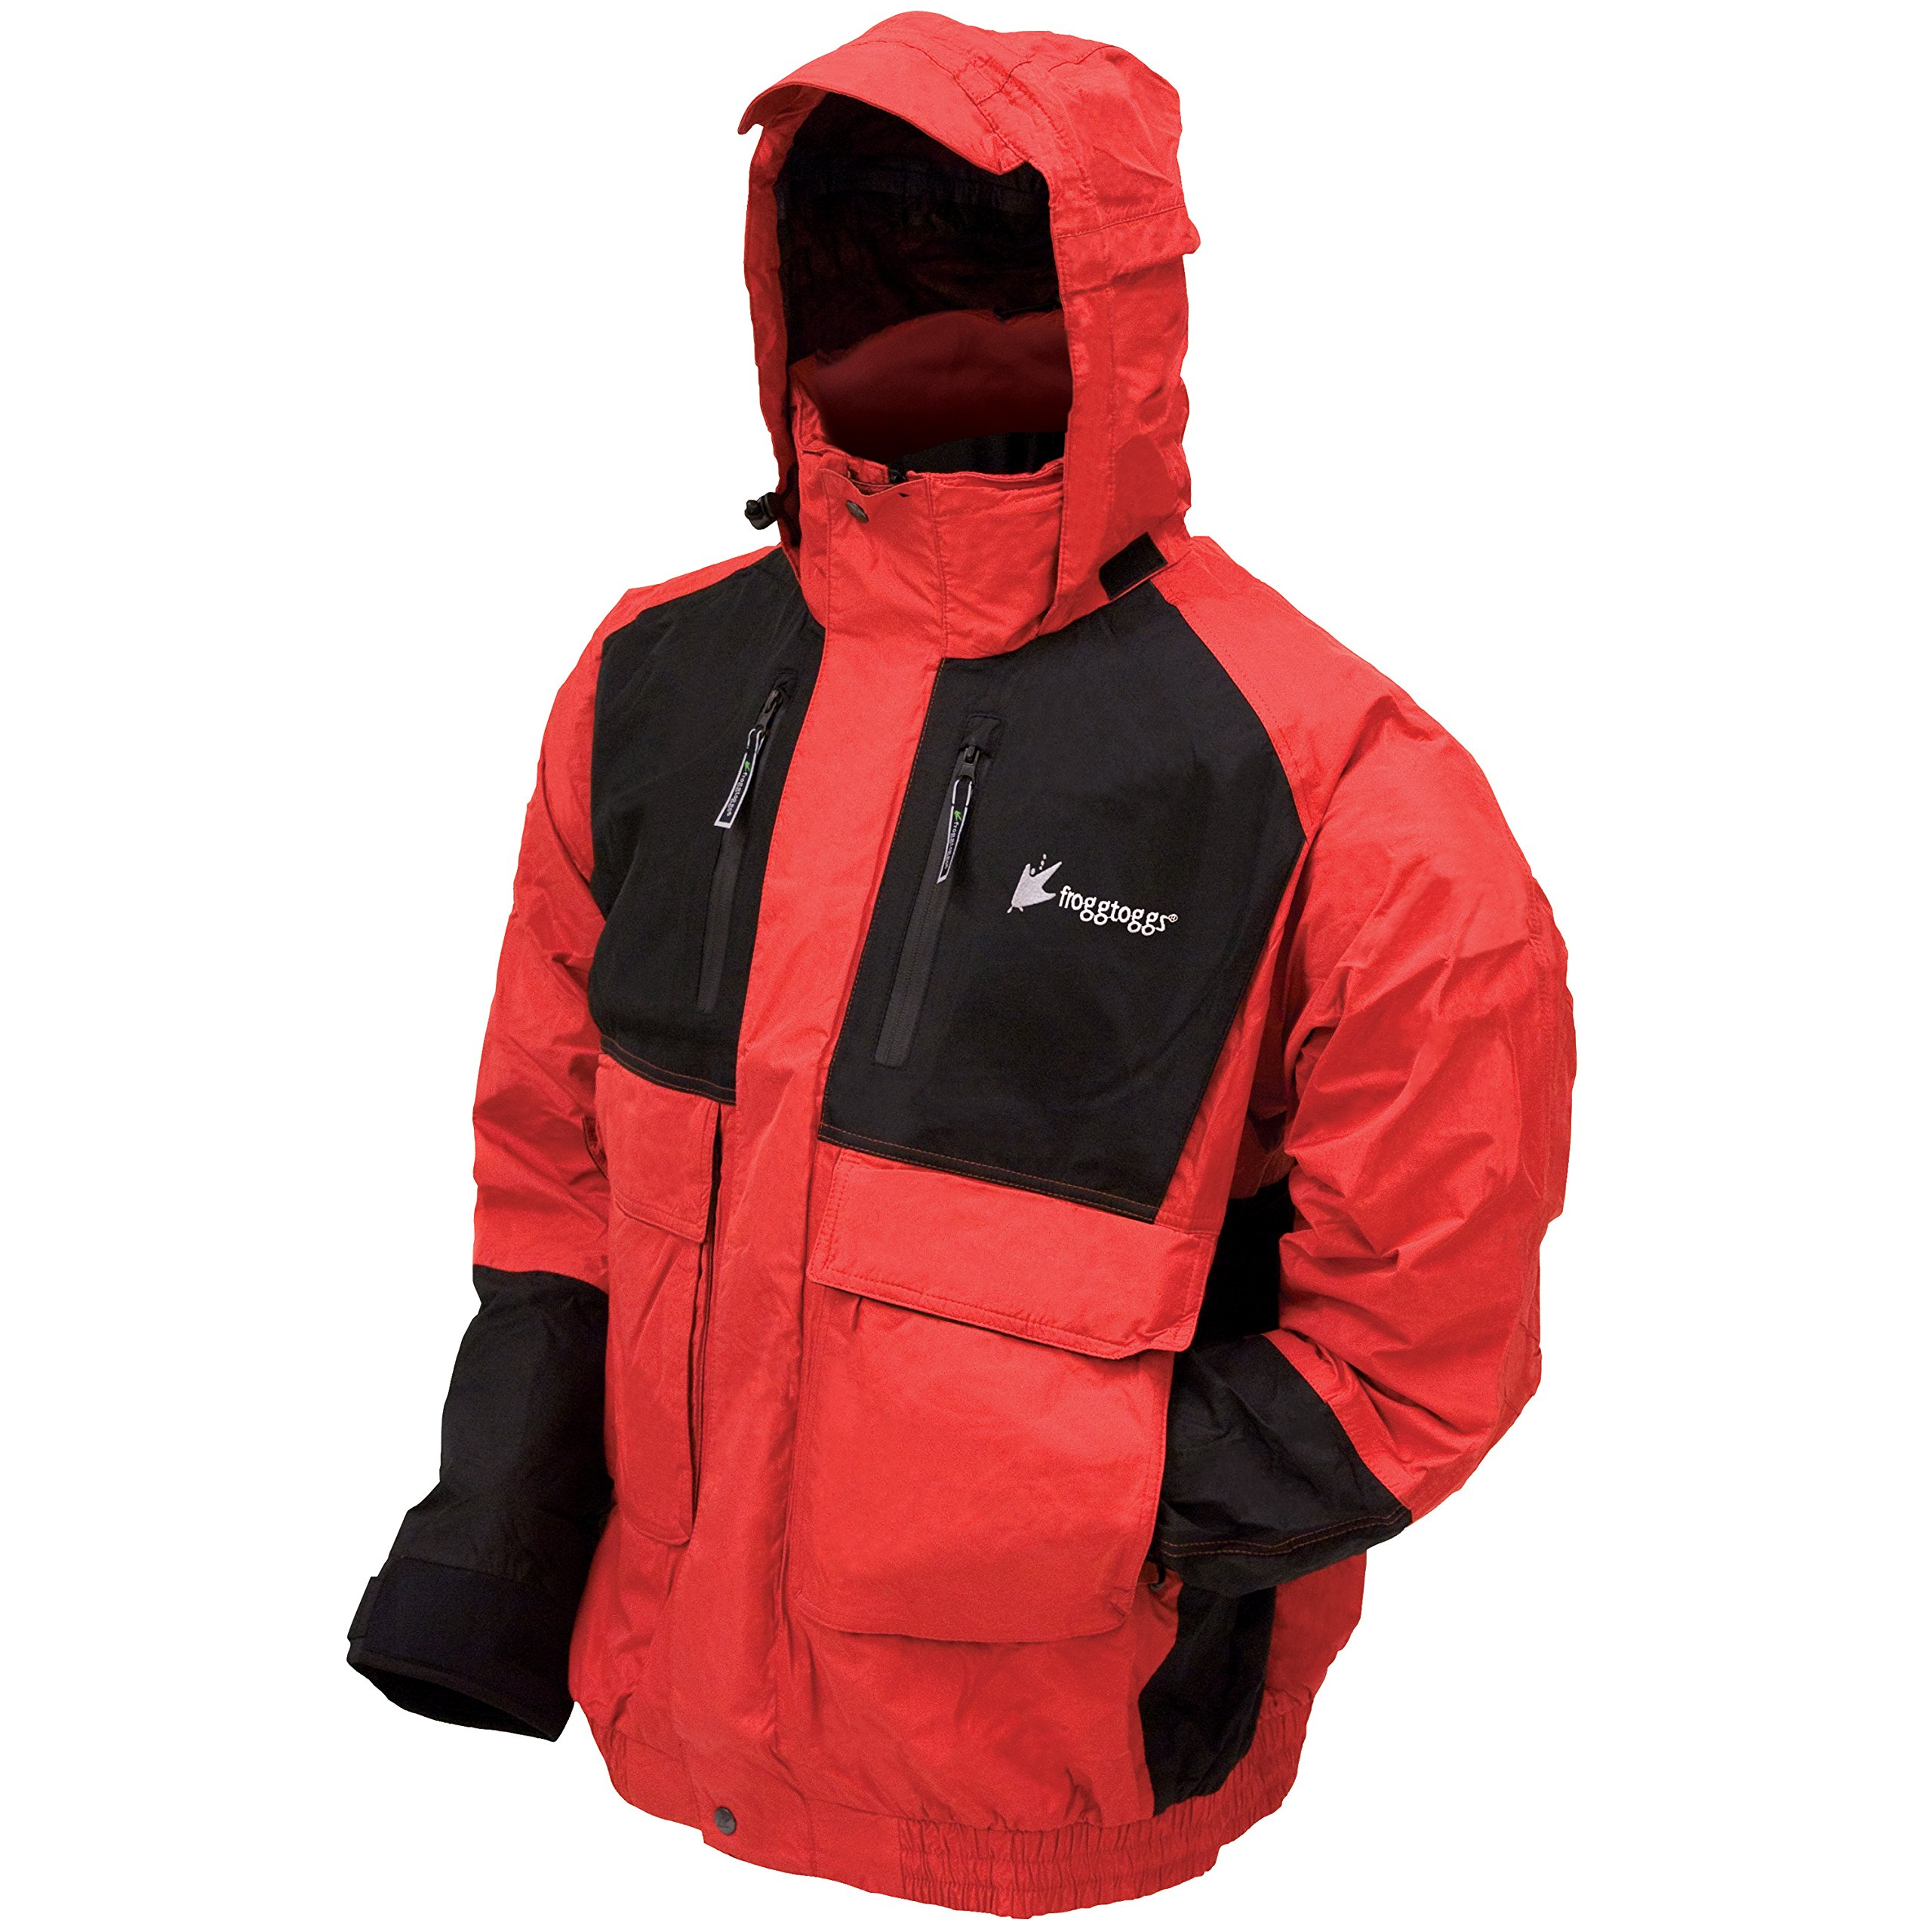 Frogg Toggs Men's Firebelly 2-Tone Jacket, Red/Black, Medium by Frogg Toggs